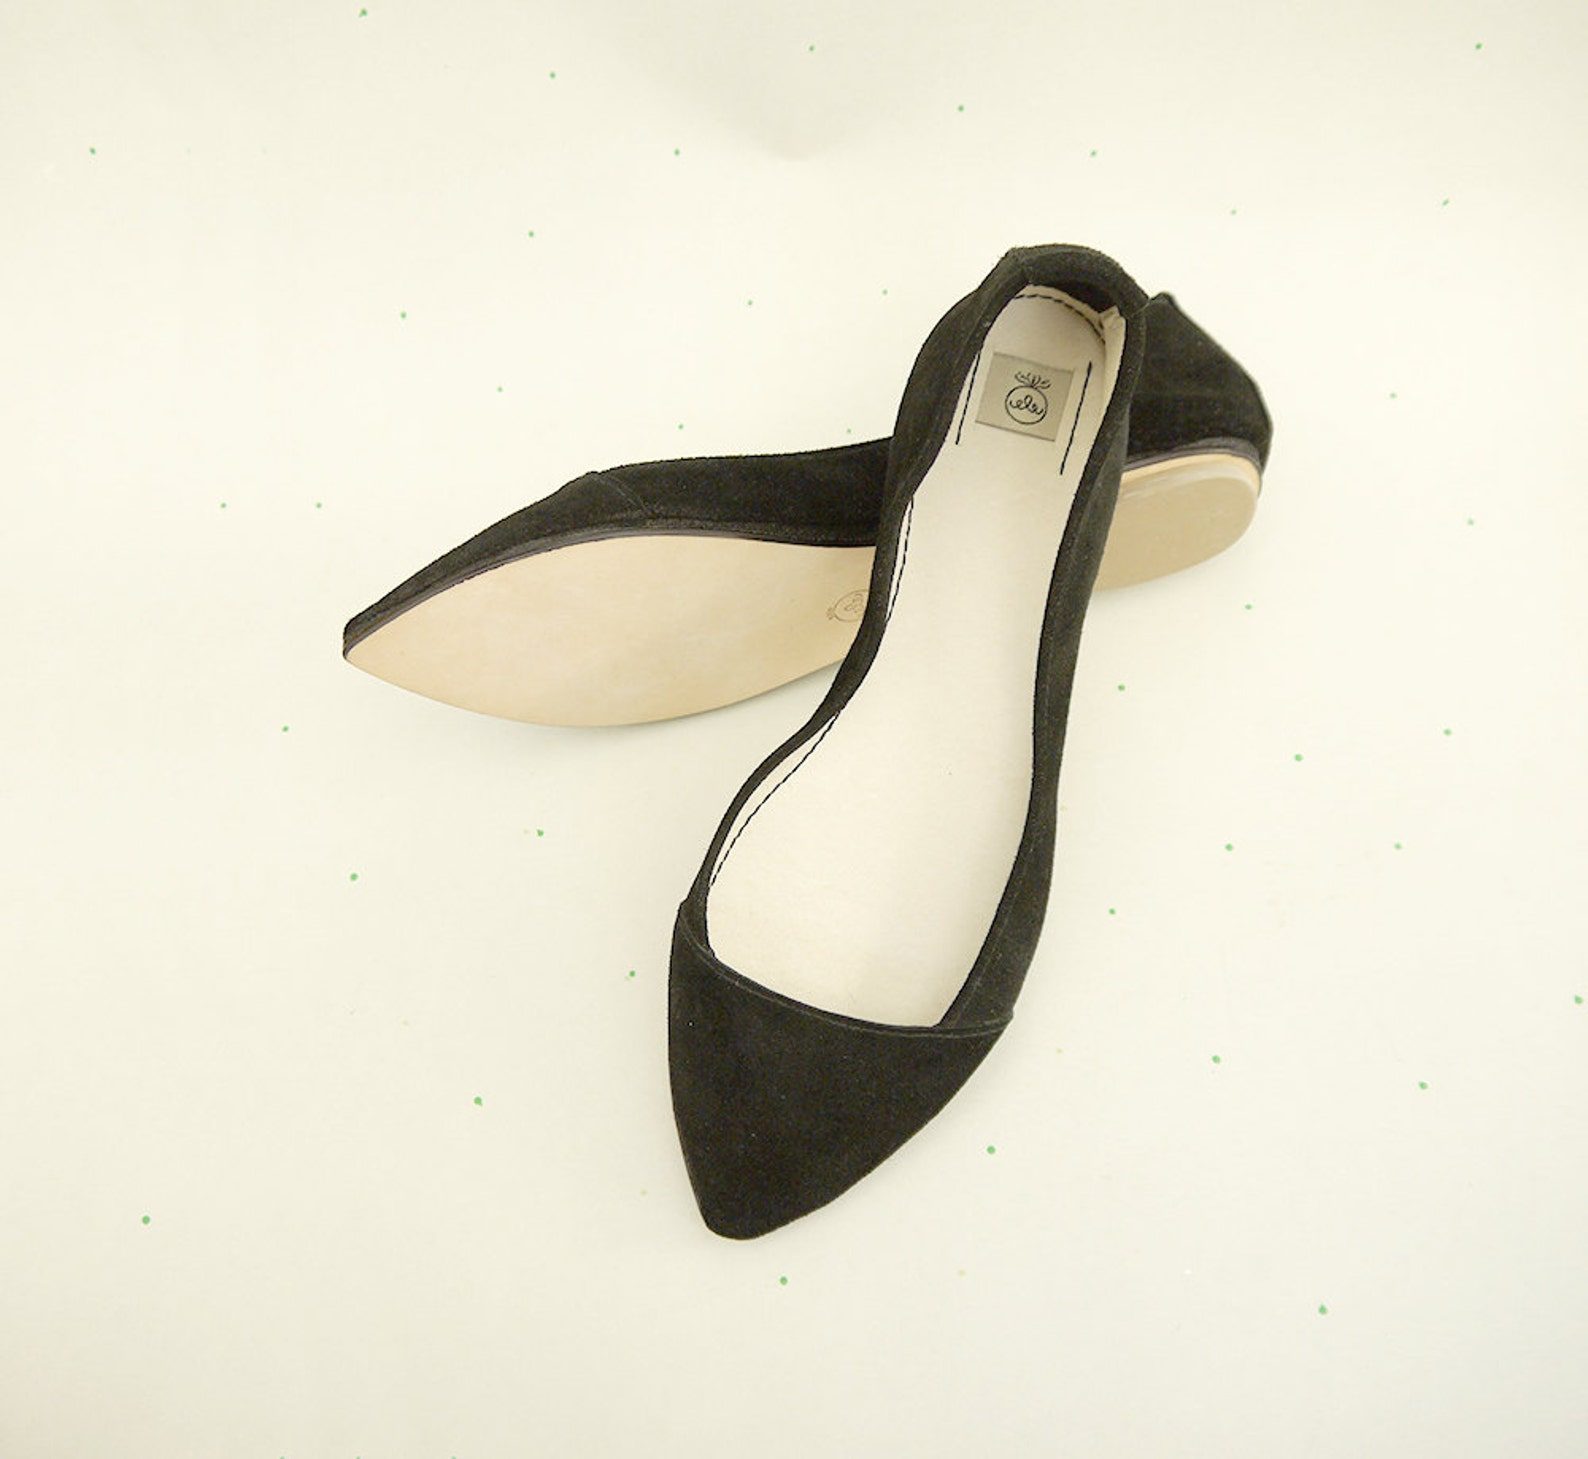 d' orsay shoes. pointy ballet flats. pointy shoes. pointy flats. pointed toe shoes. black ballet flats. bridal shoes. weddin